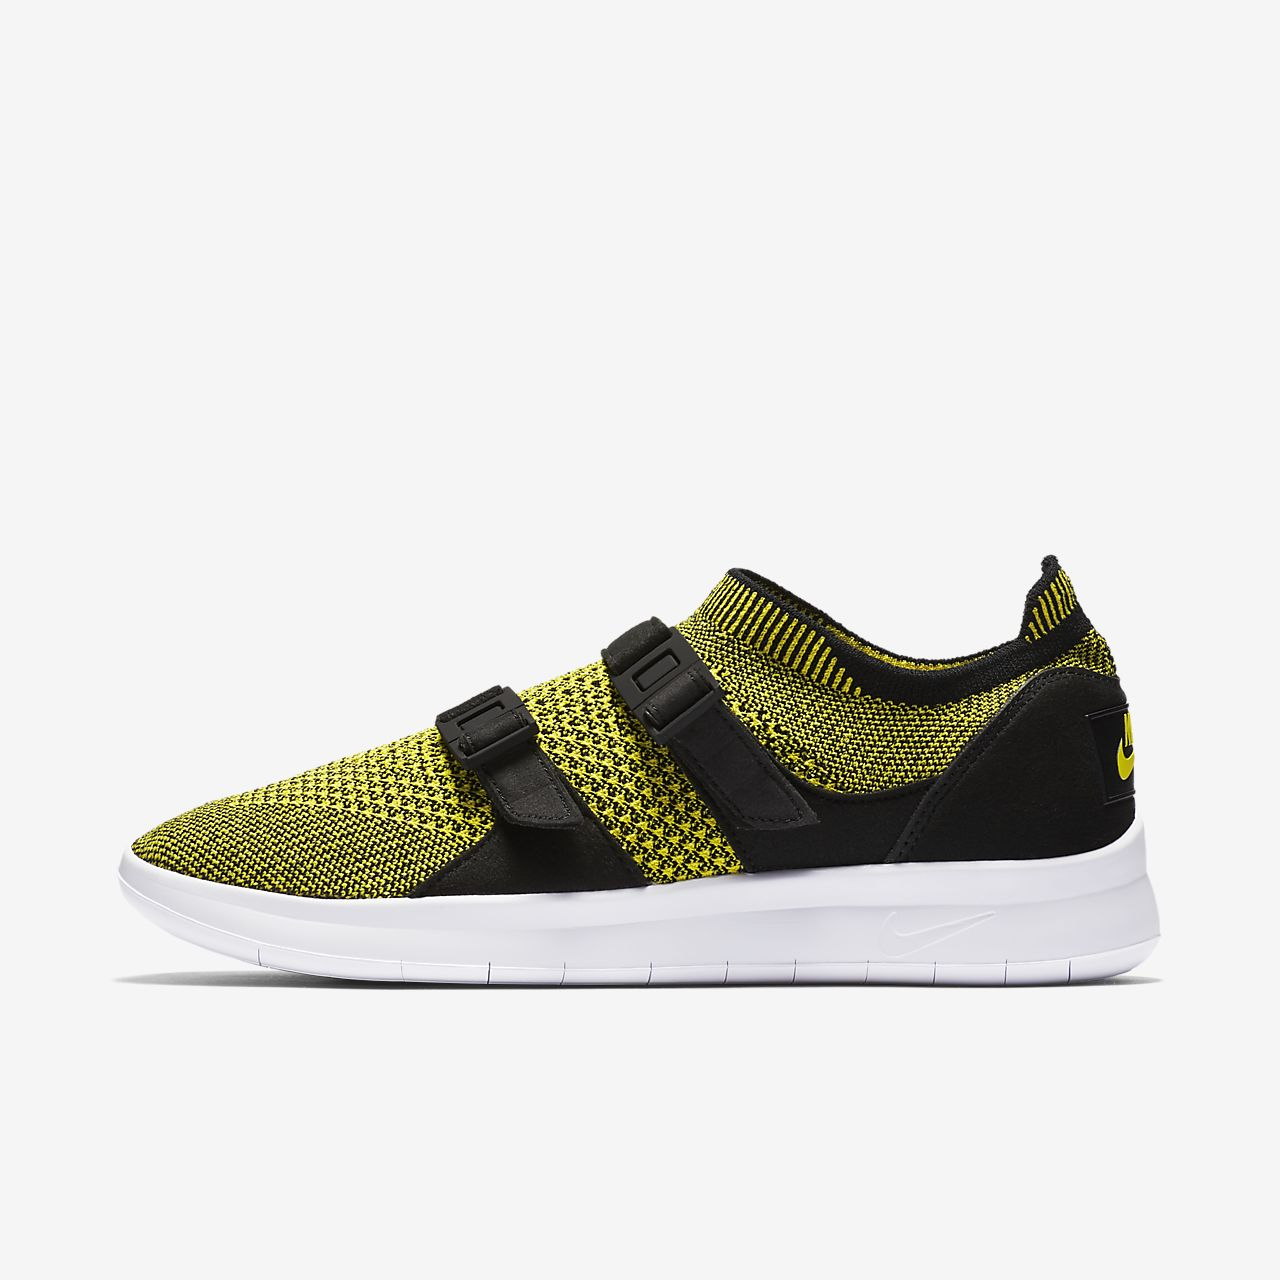 6a7c79aefb514 ... clearance nike air sock racer ultra flyknit womens shoe 60f3e e7ab6